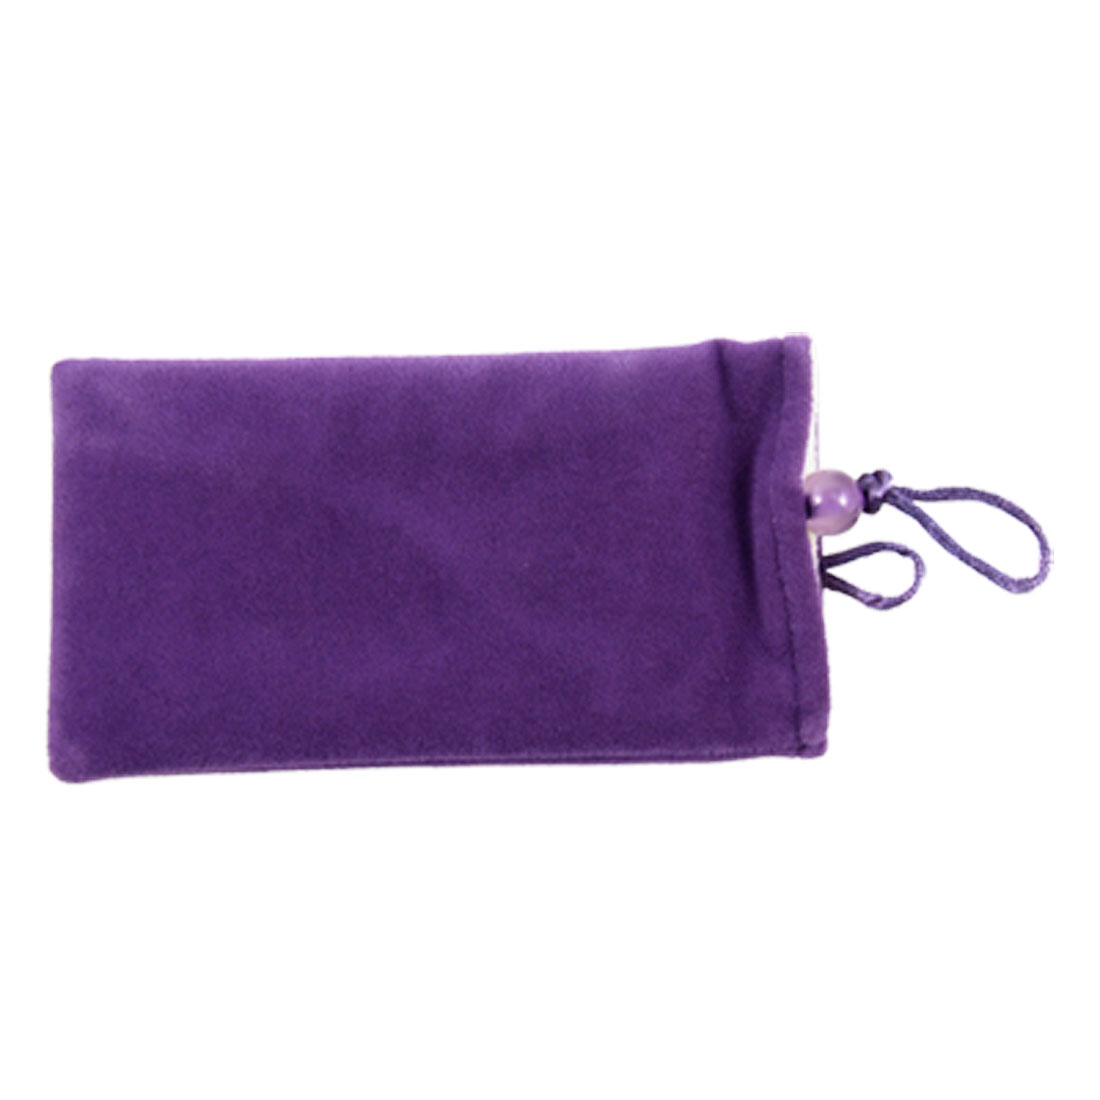 Purple Soft Plush Cell Phone Pouch Bag for Mobile Phone